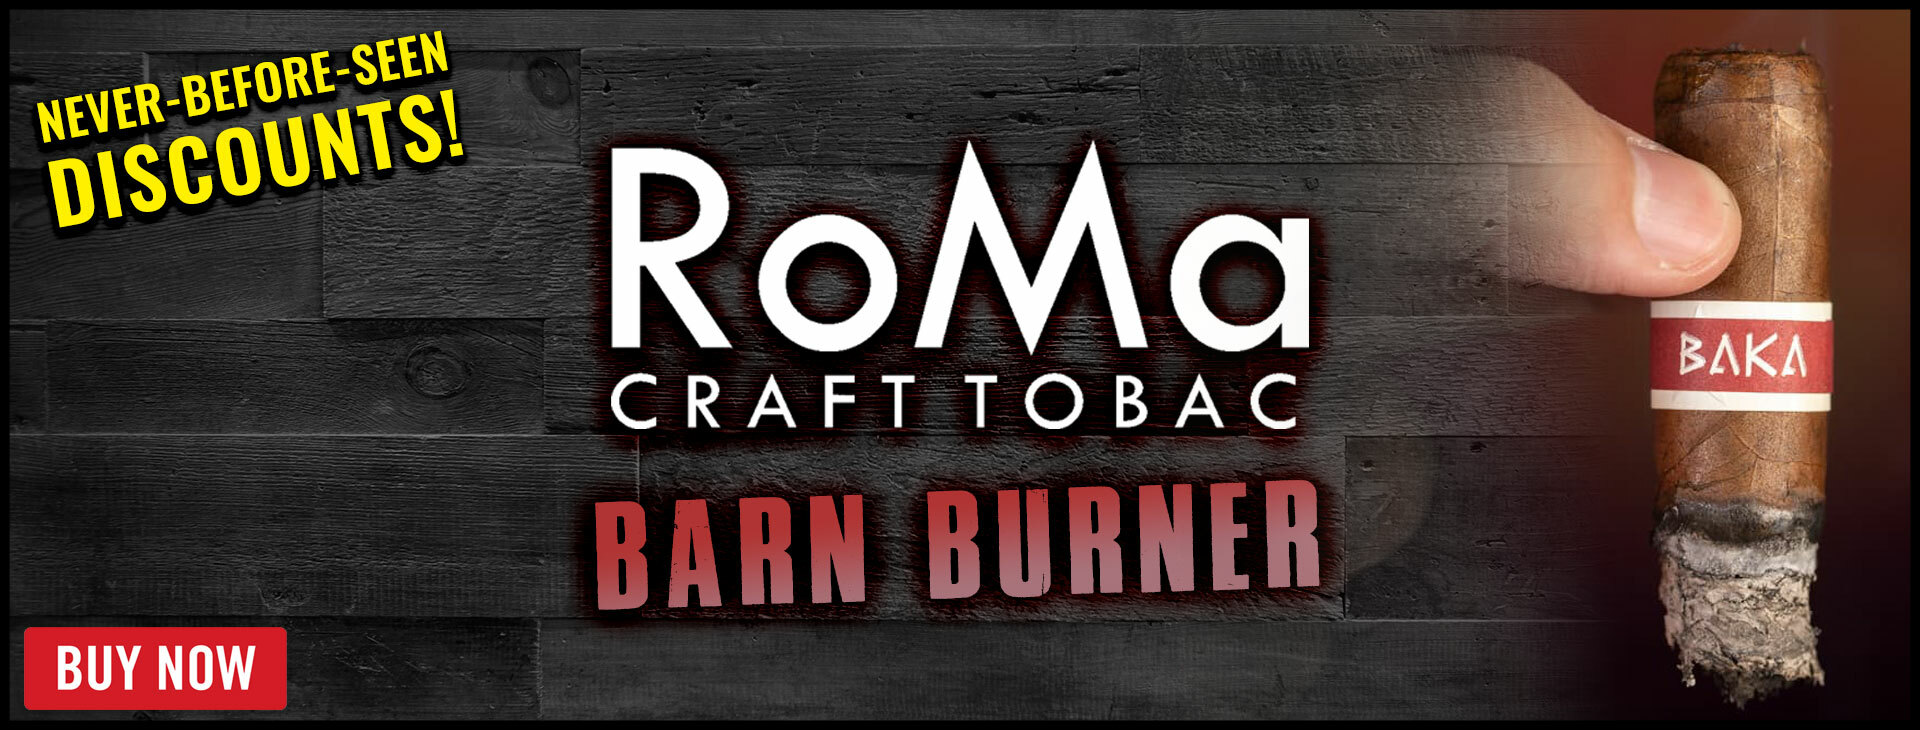 Up To 25% OFF RoMa Craft